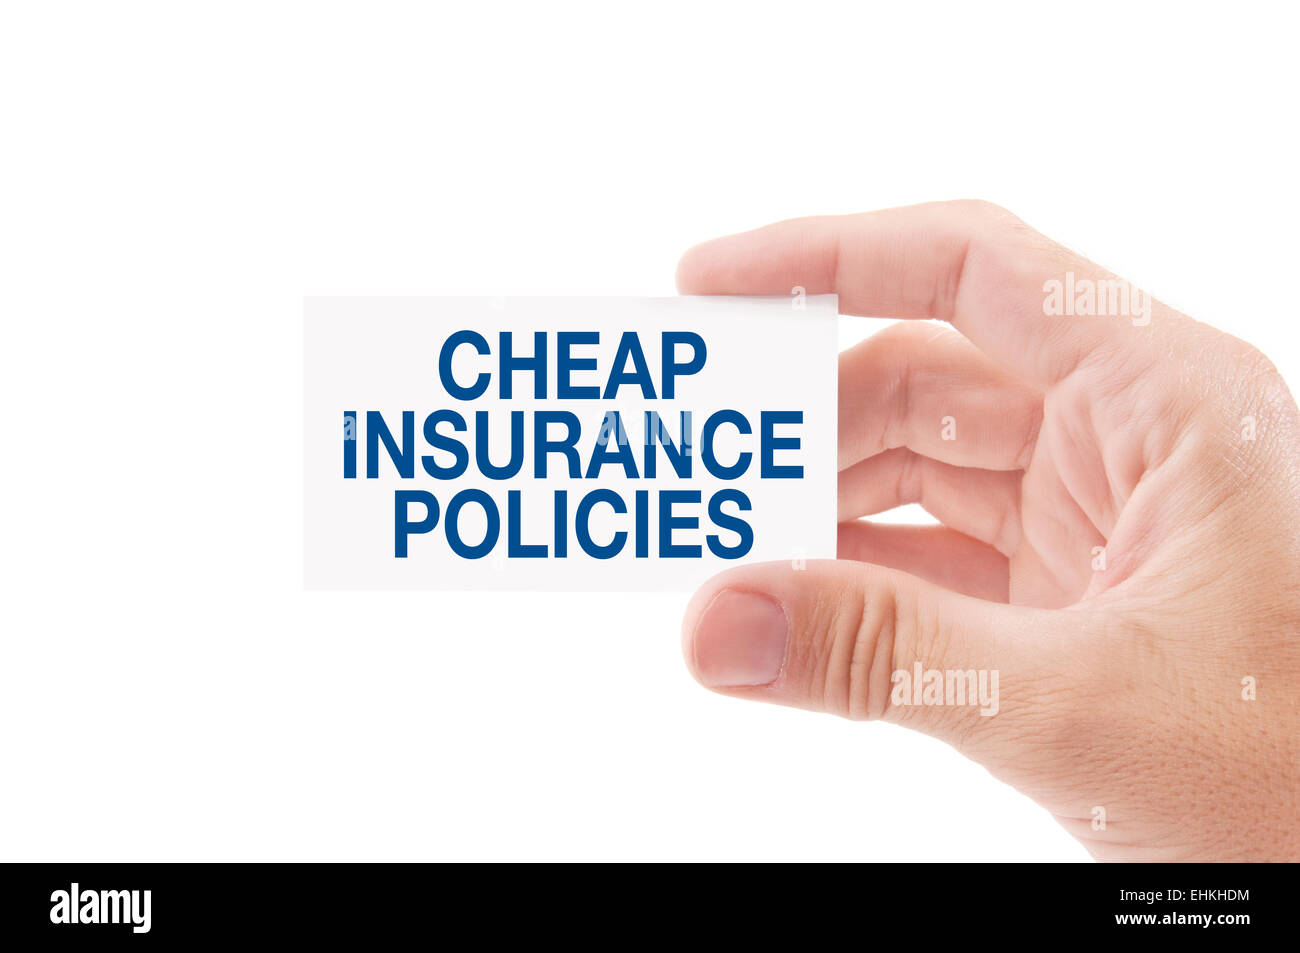 Insurance Agent Holding Business Card with Cheap Insurance Policies Title, Isolated on White Background. - Stock Image